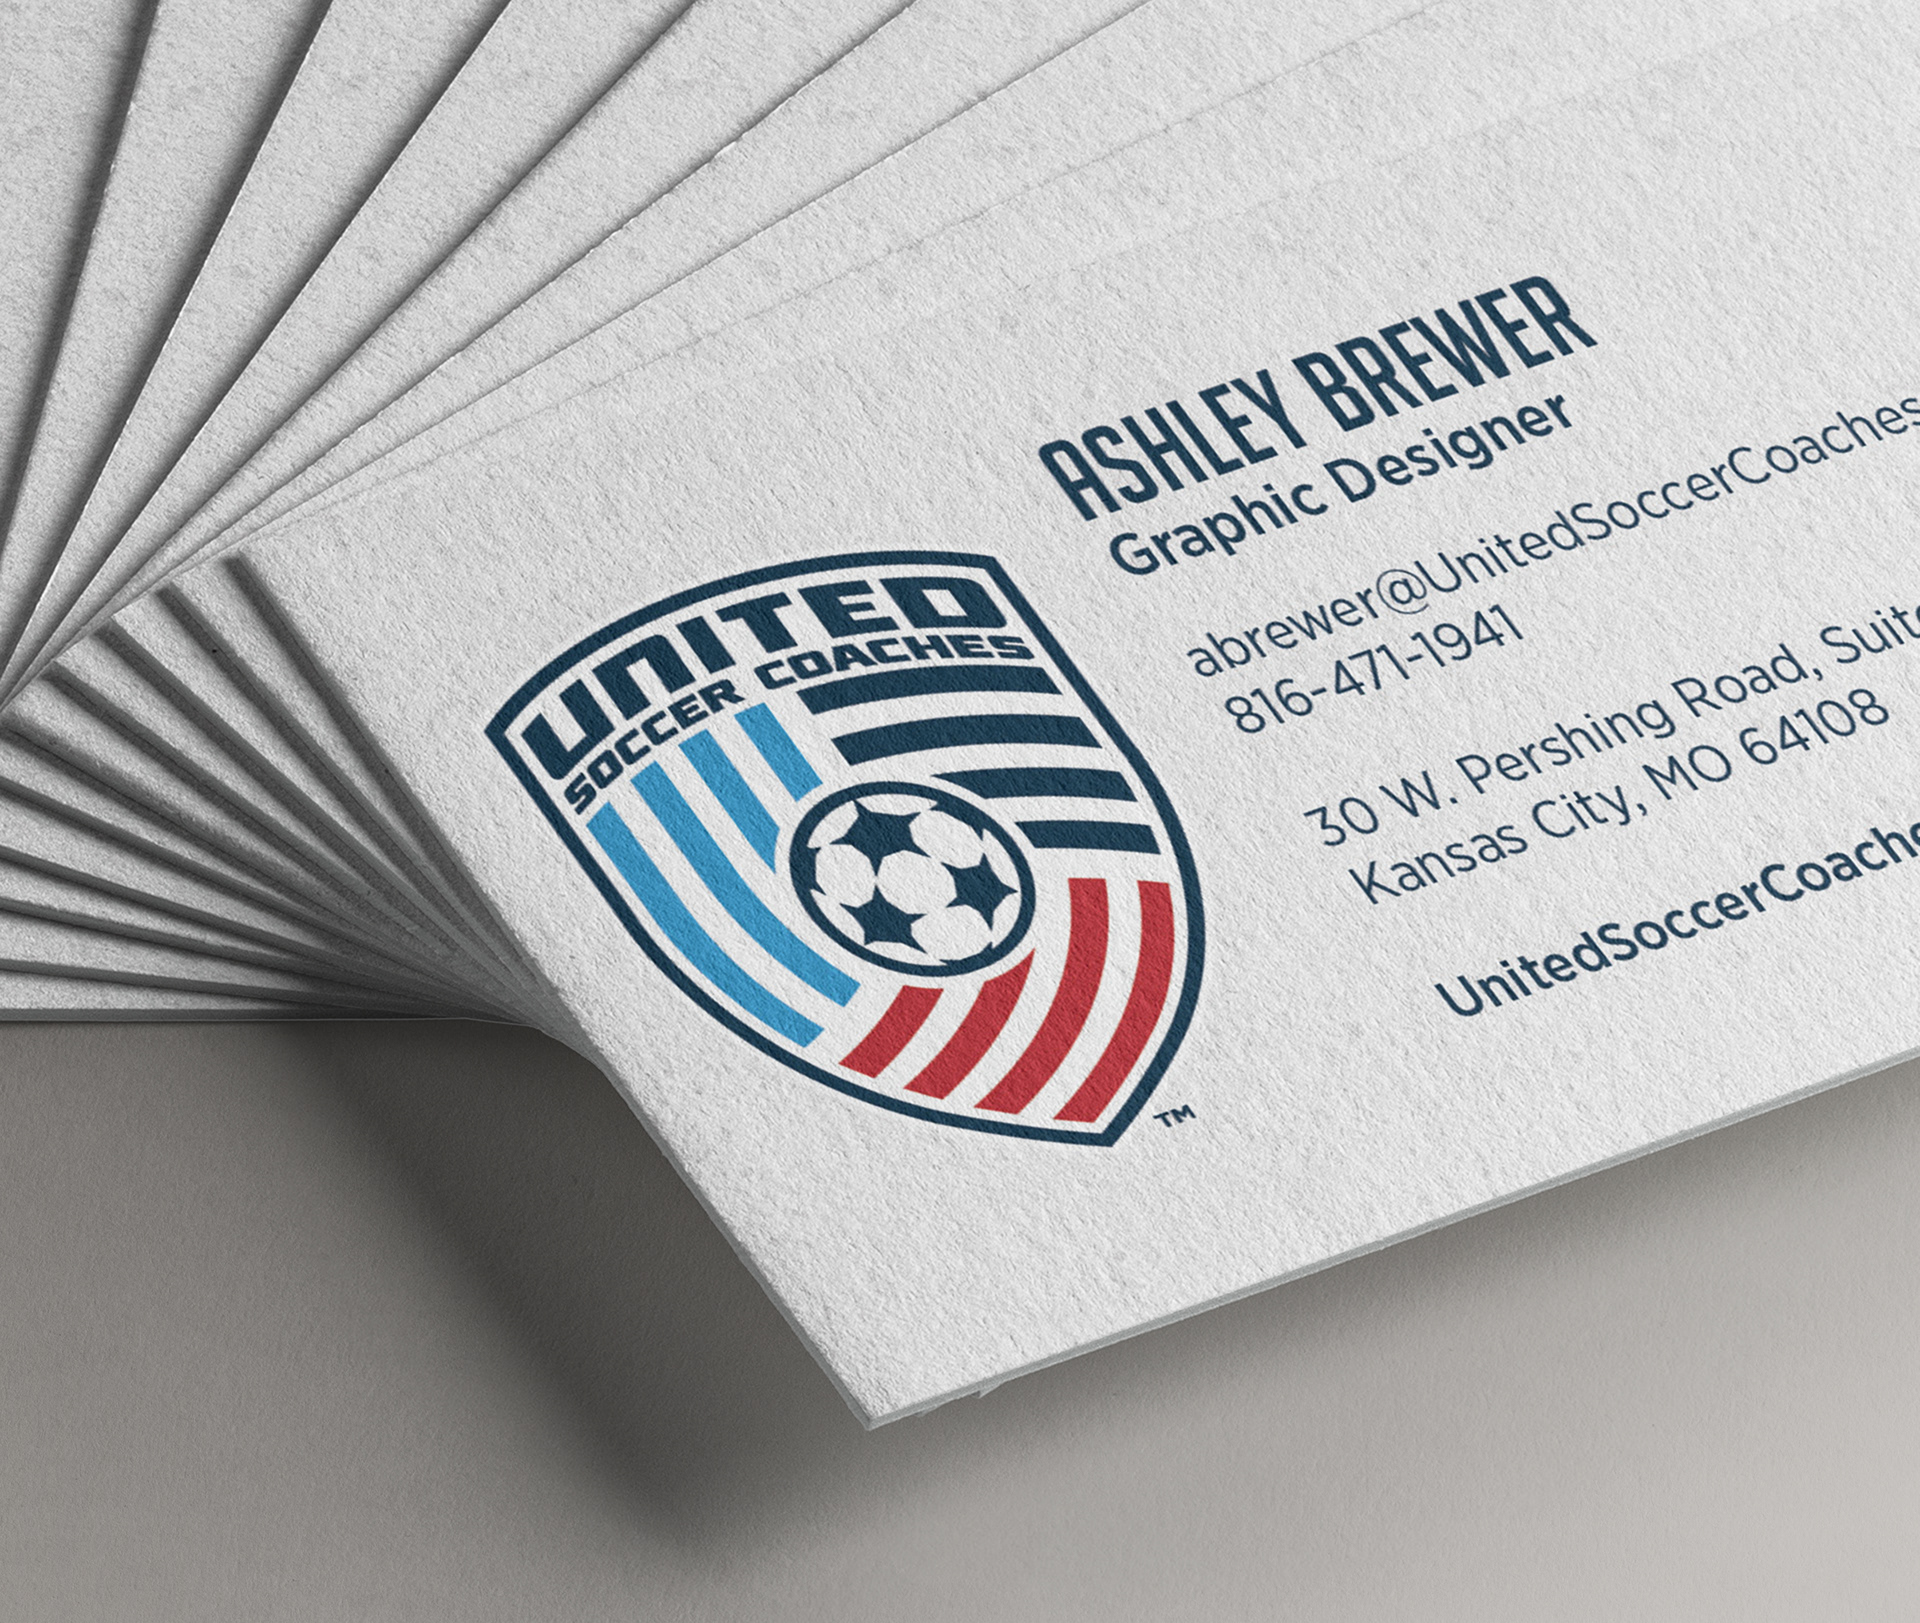 Ashley brewer united soccer coaches business cards the nscaa is now united soccer coaches we recently underwent an exciting brand overhaul which involved a new name and mark this is one of our new pieces colourmoves